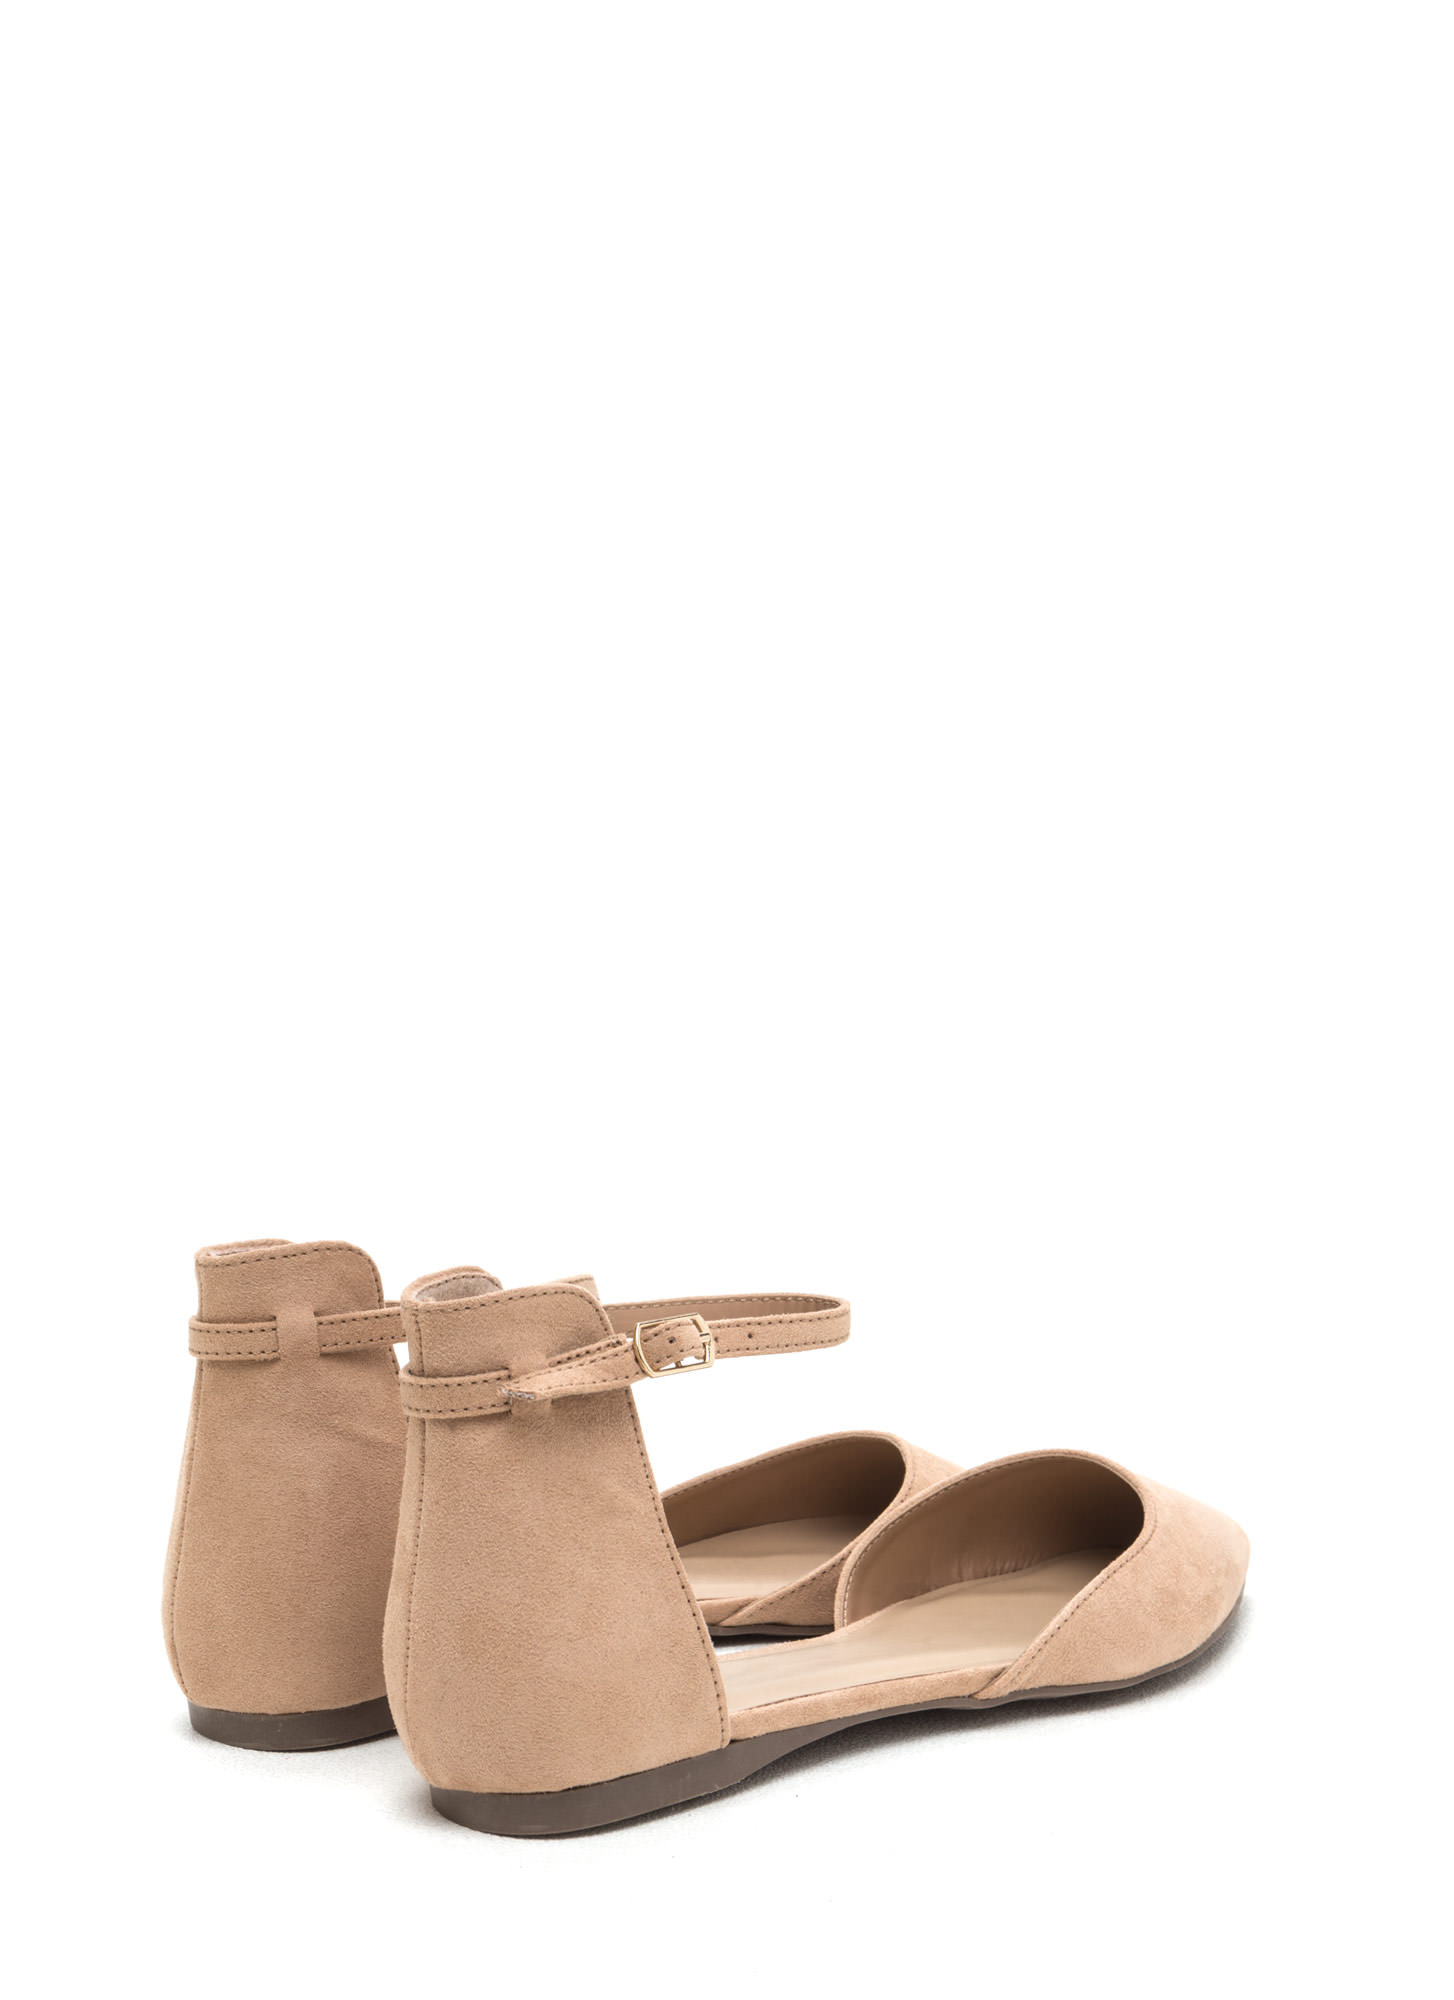 Day By Day D'Orsay Flats NATURAL